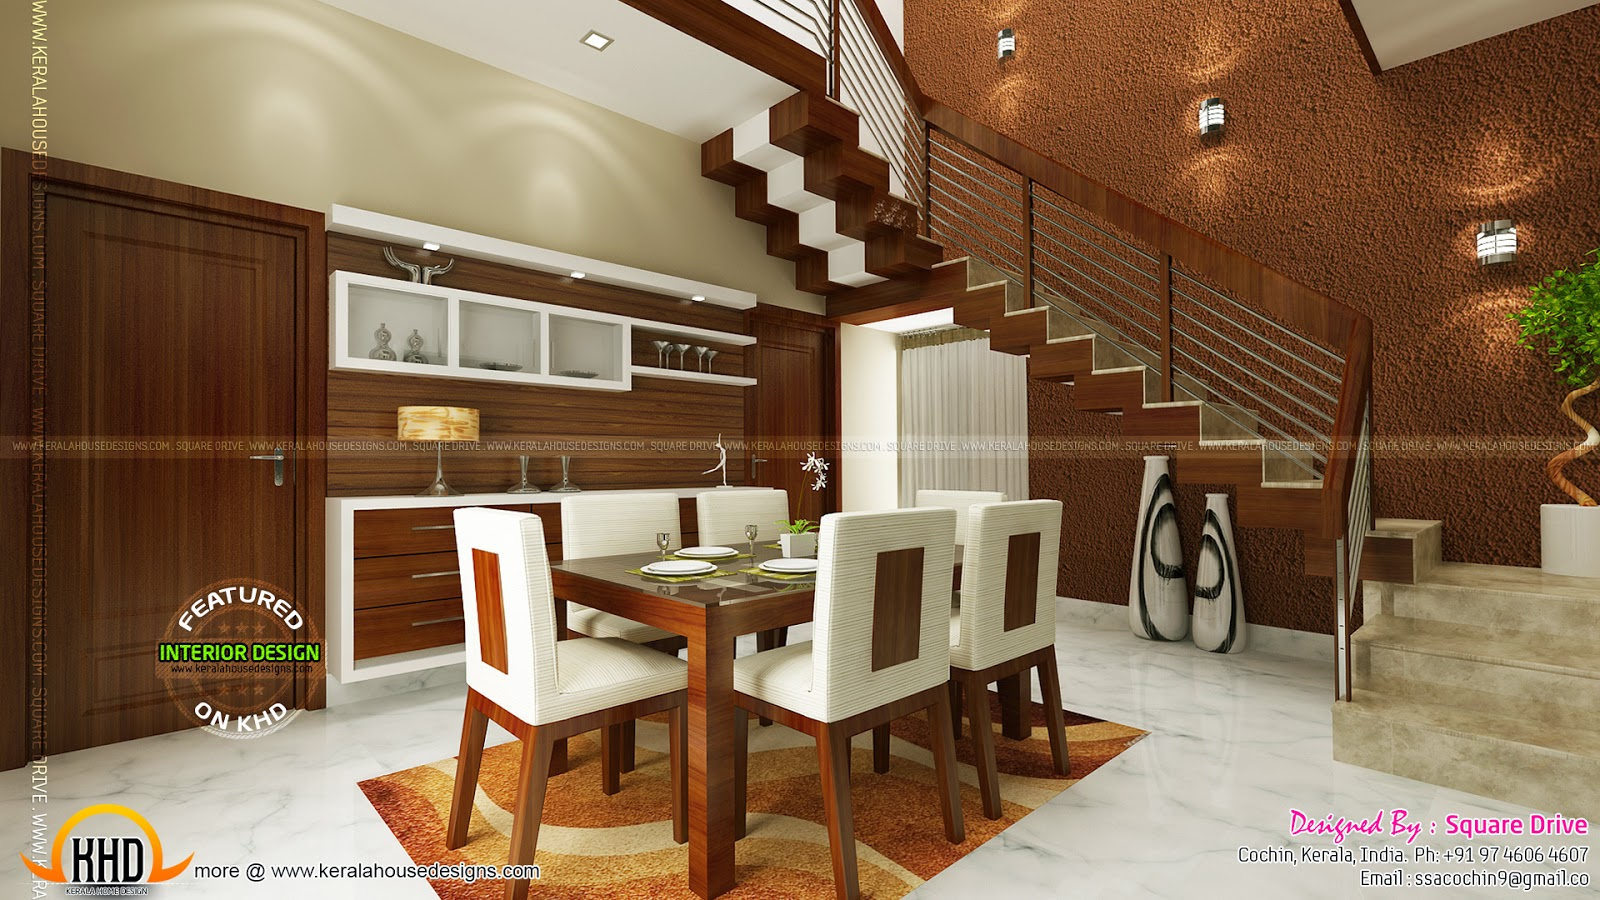 Cochin interior design kerala home design and floor plans for House interior design kerala photos